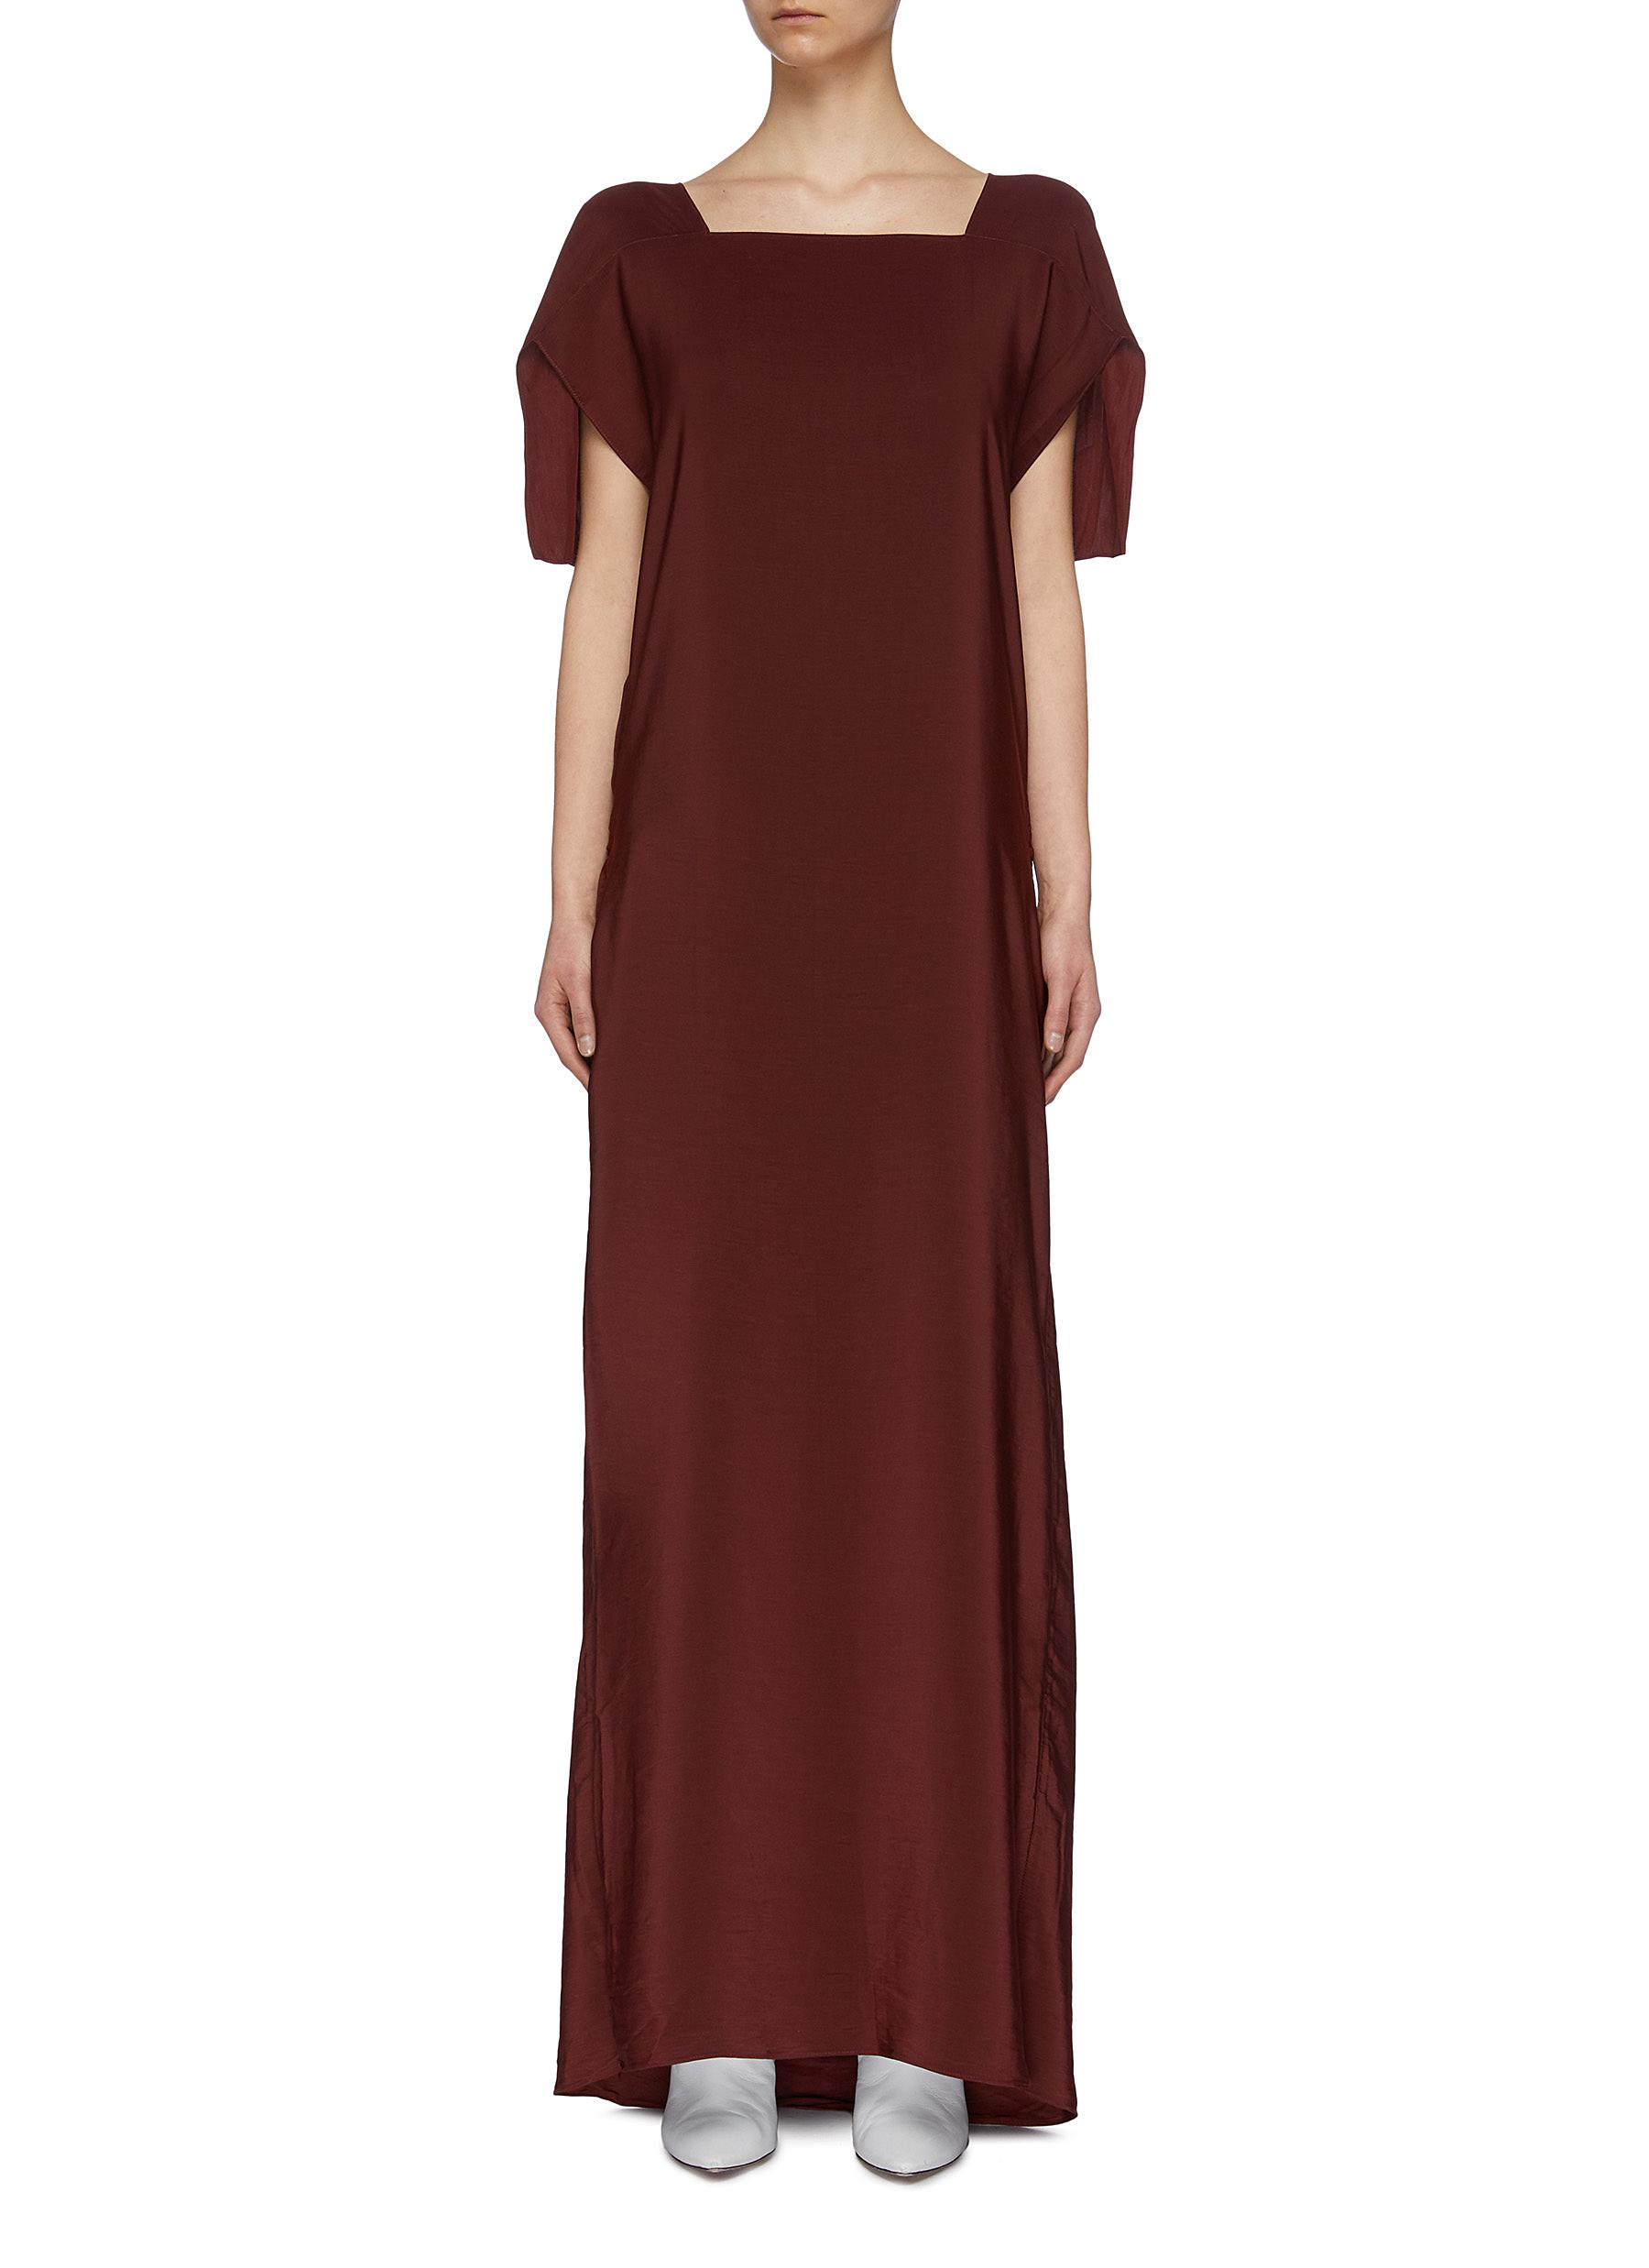 Calabash convertible crepe maxi dress by The R Collective